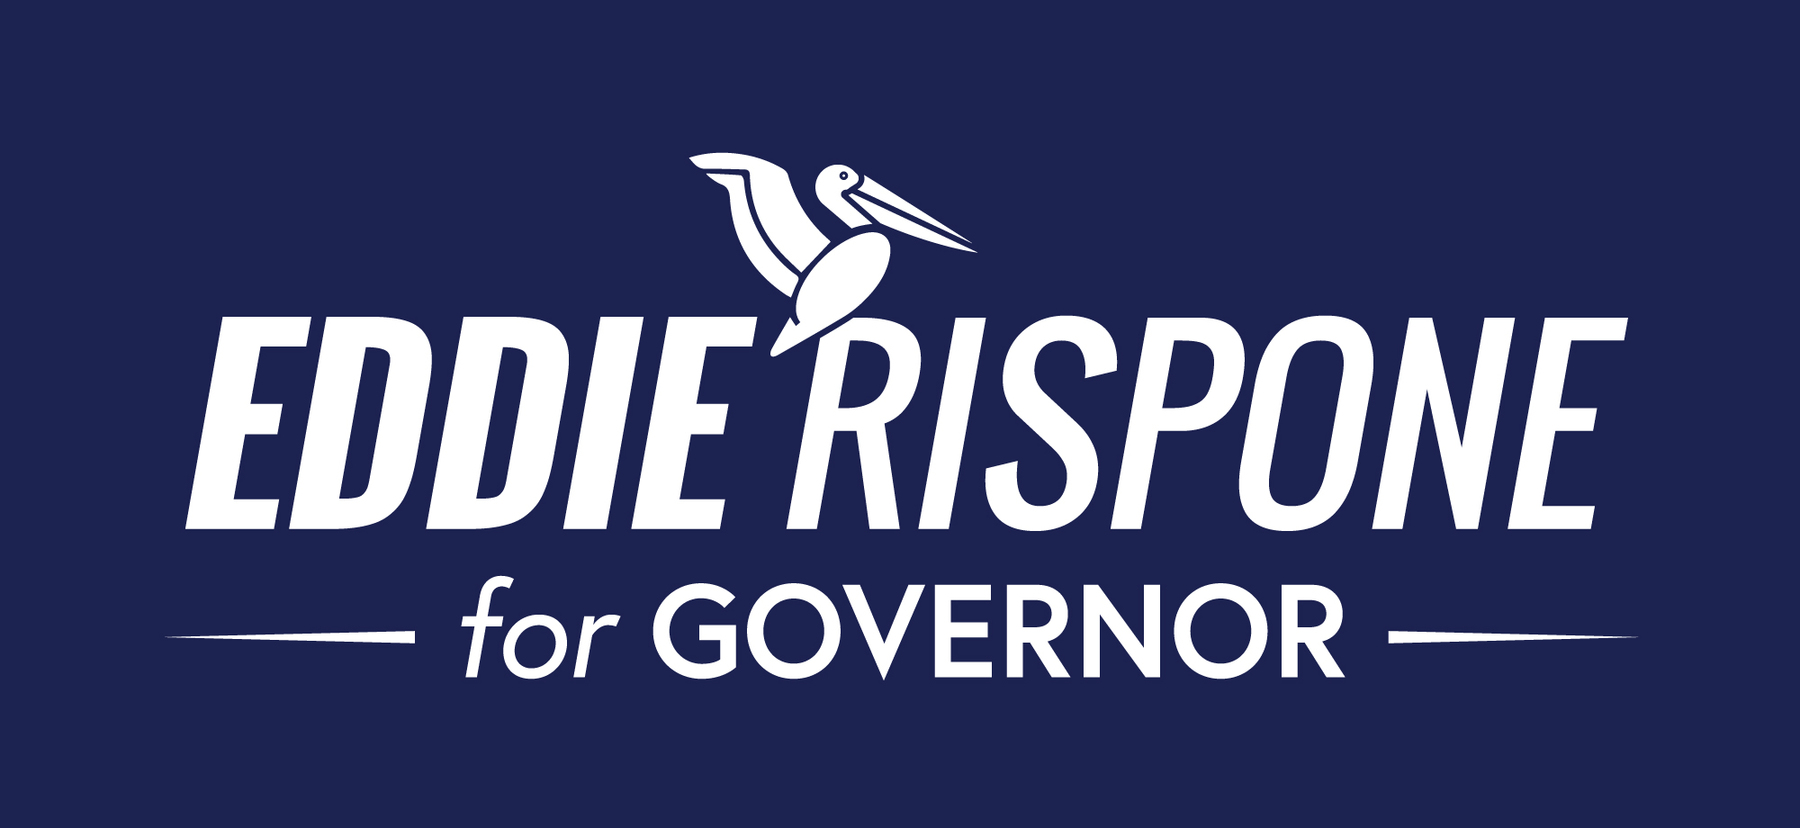 Eddie Rispone for Governor: Homepage Donate